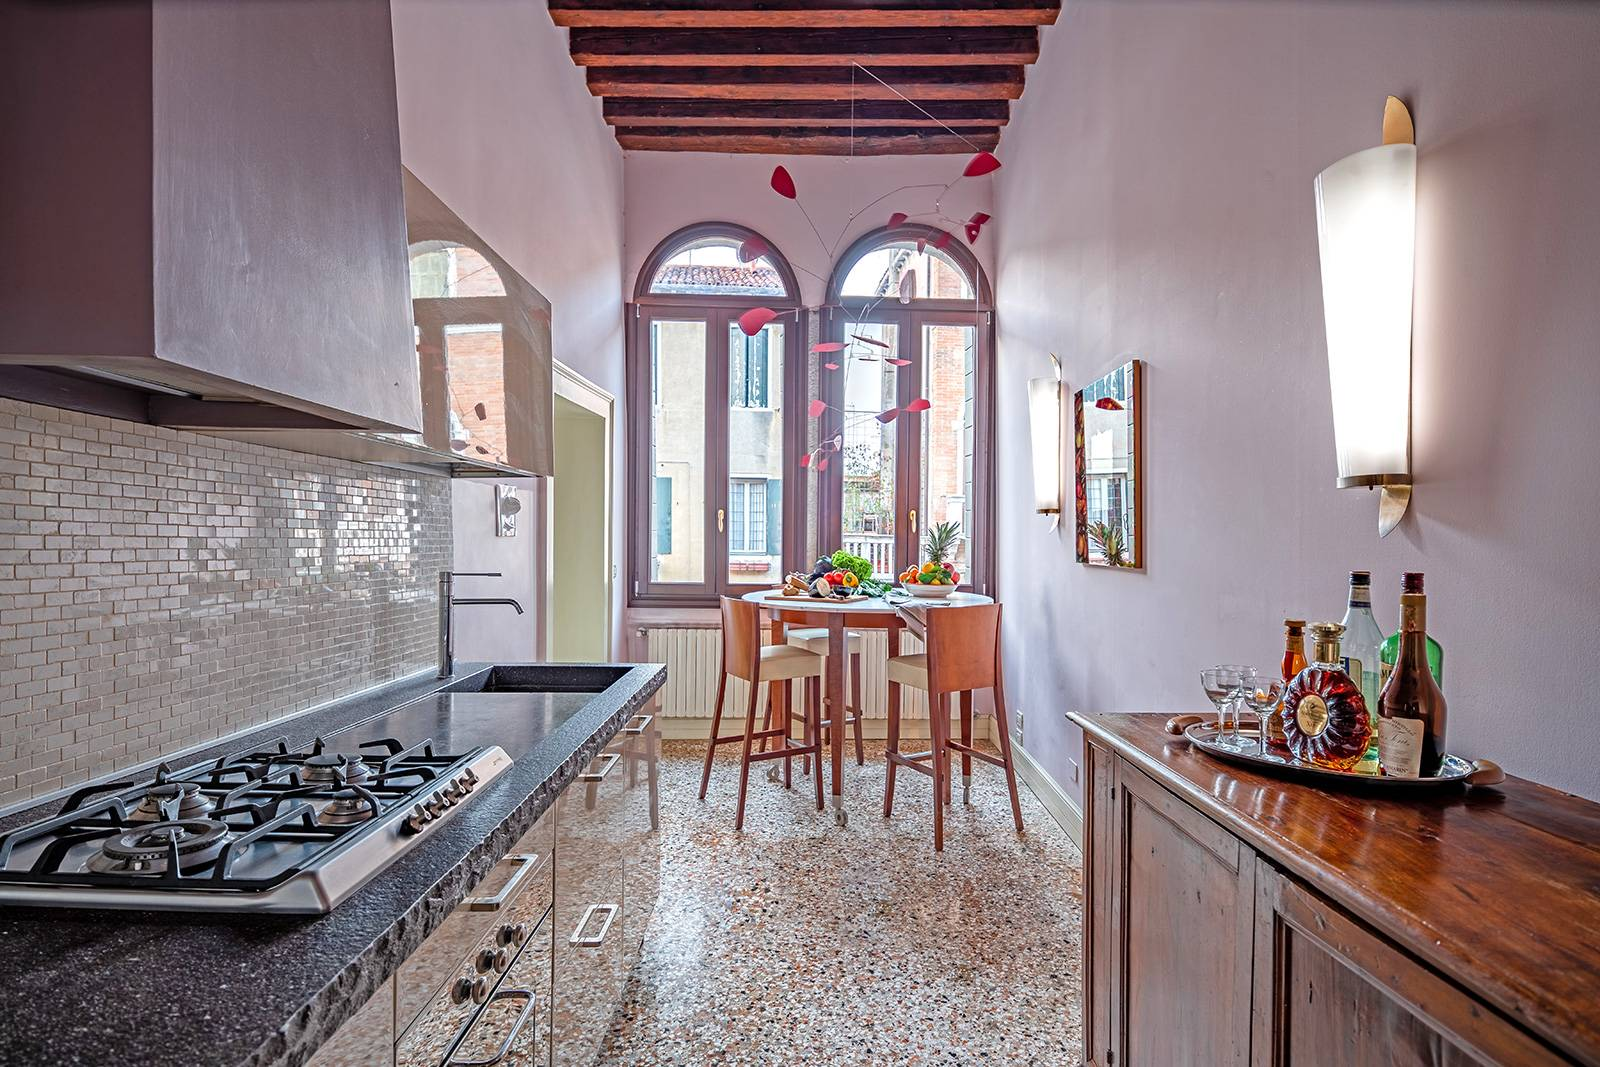 the kitchen is compact but fully equipped with top of the line appliances